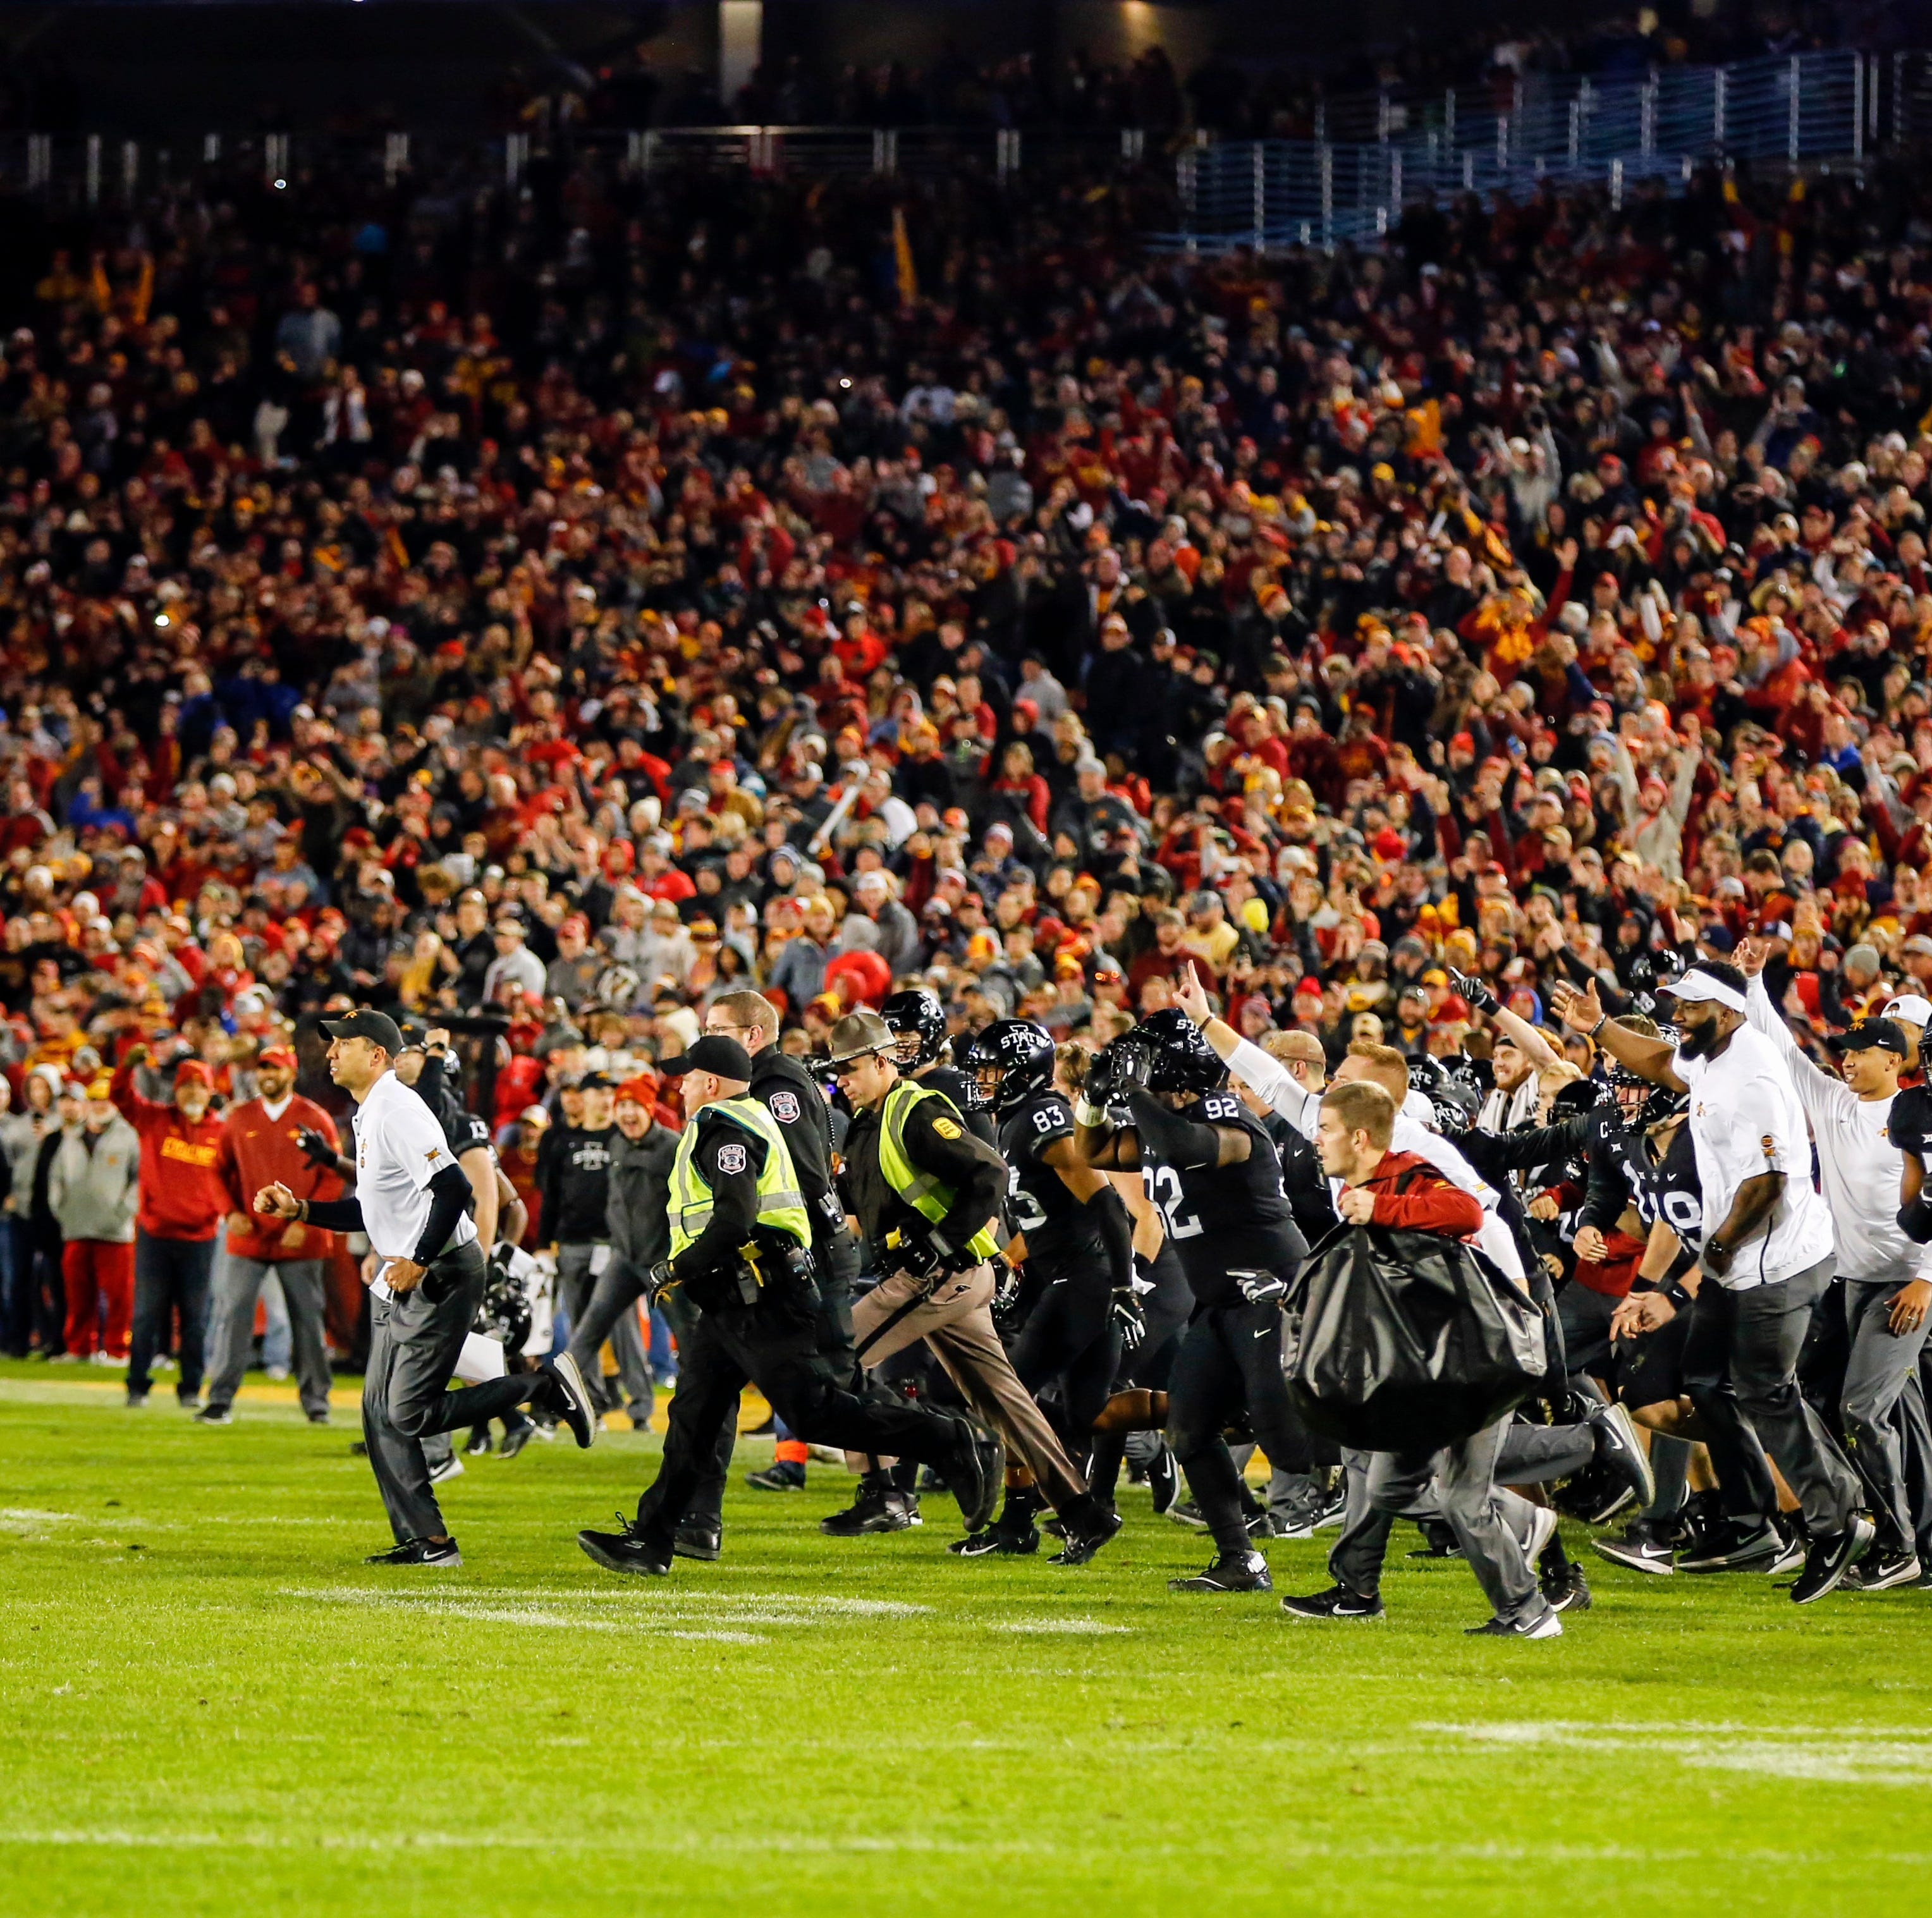 West Virginia coach Dana Holgorsen: Iowa State's field-swarming was 'unprofessional'